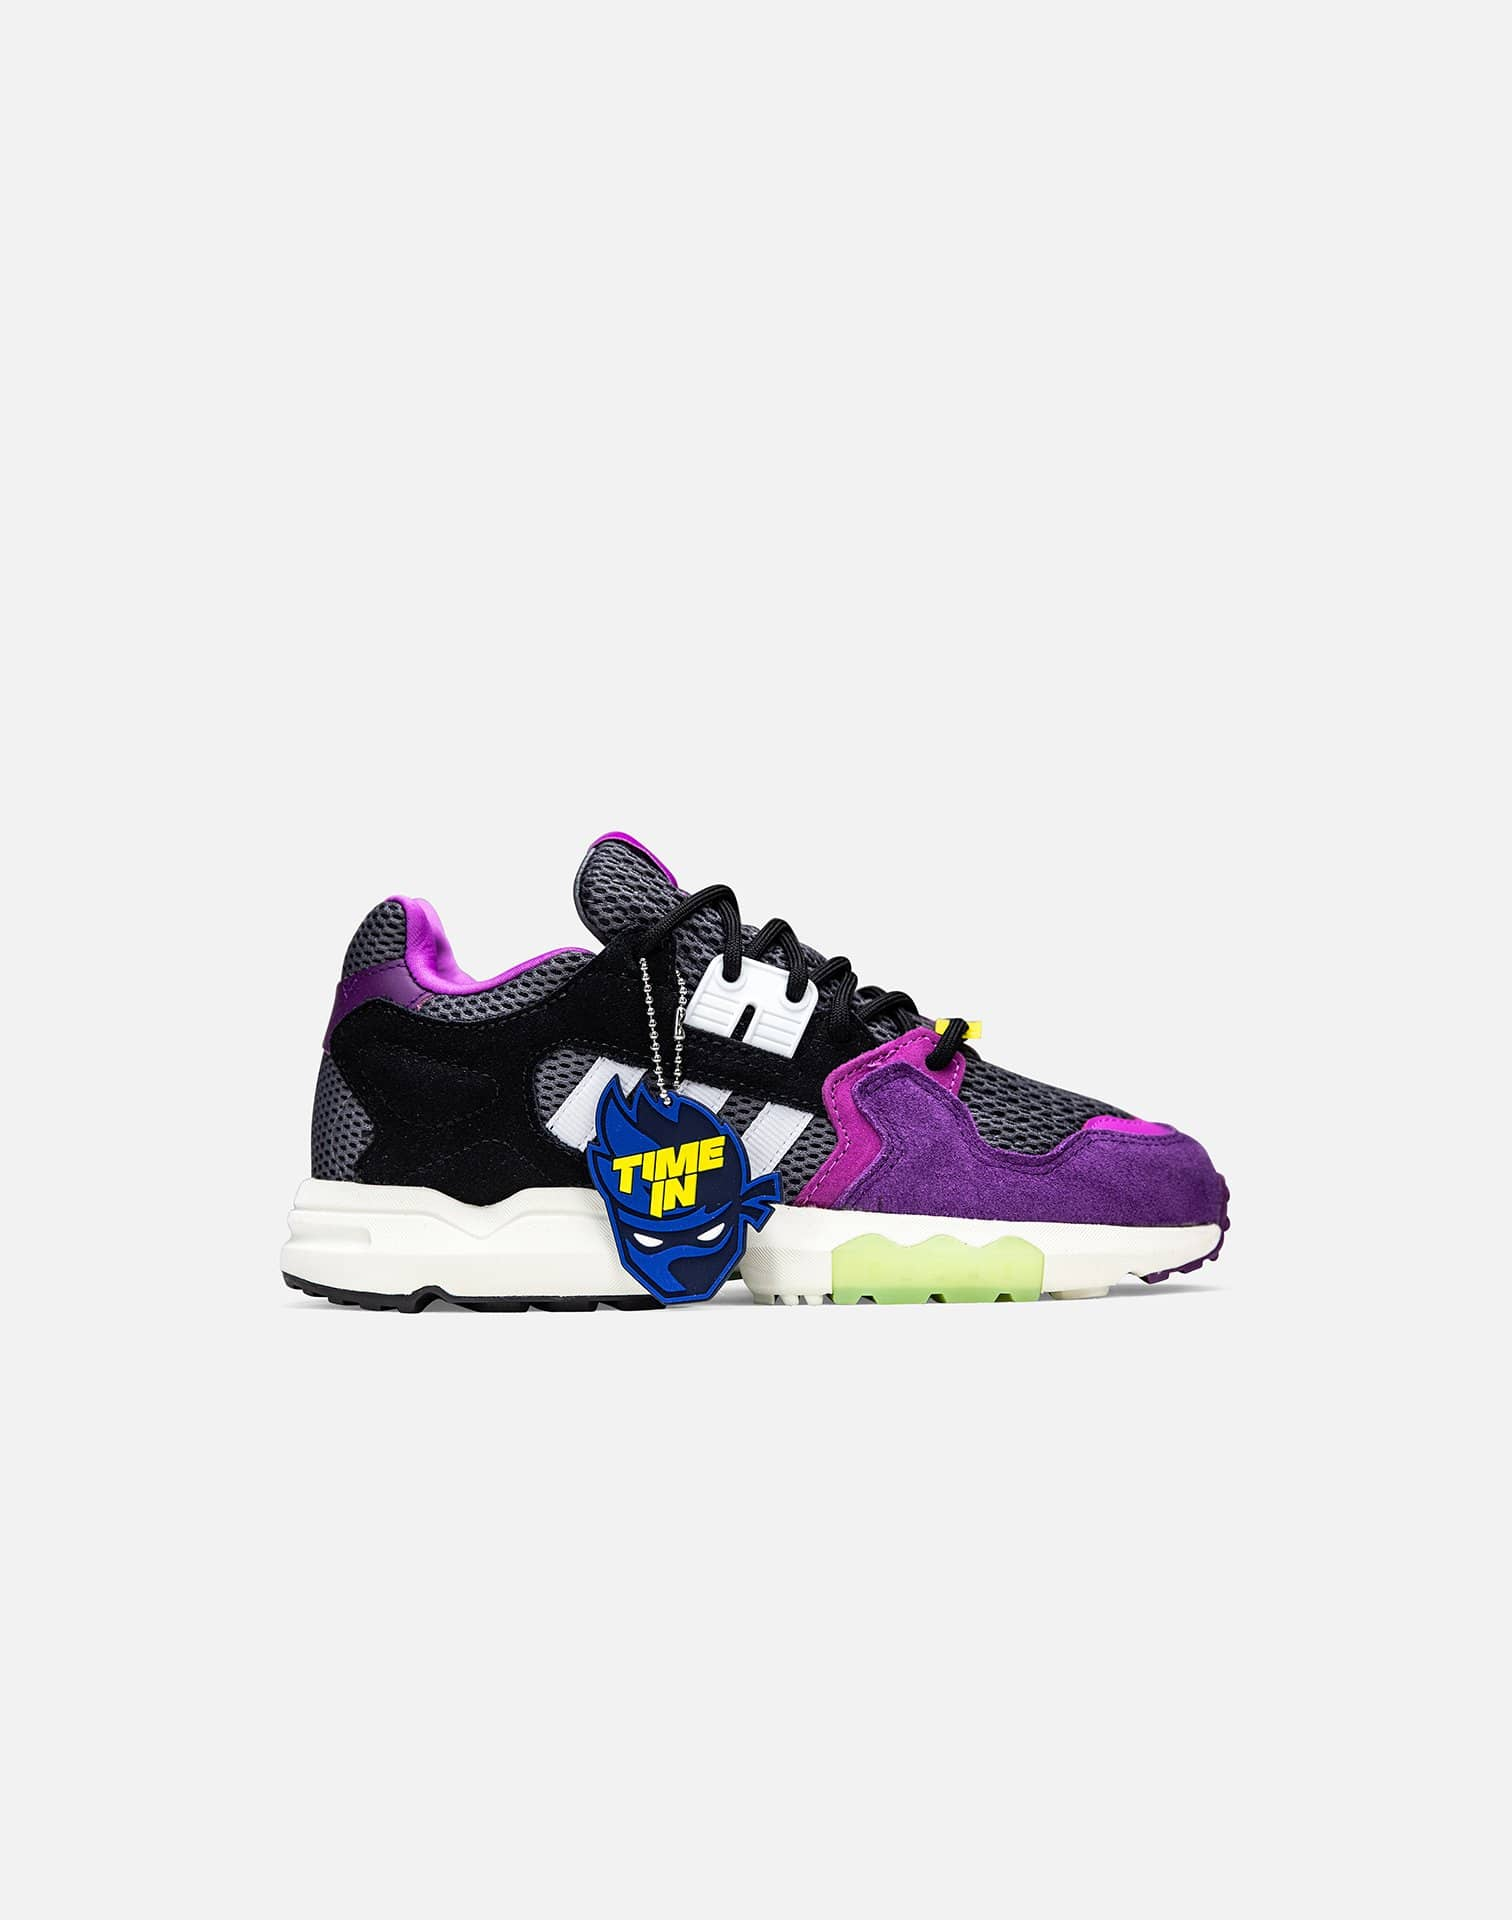 Adidas NINJA ZX TORSION GRADE-SCHOOL